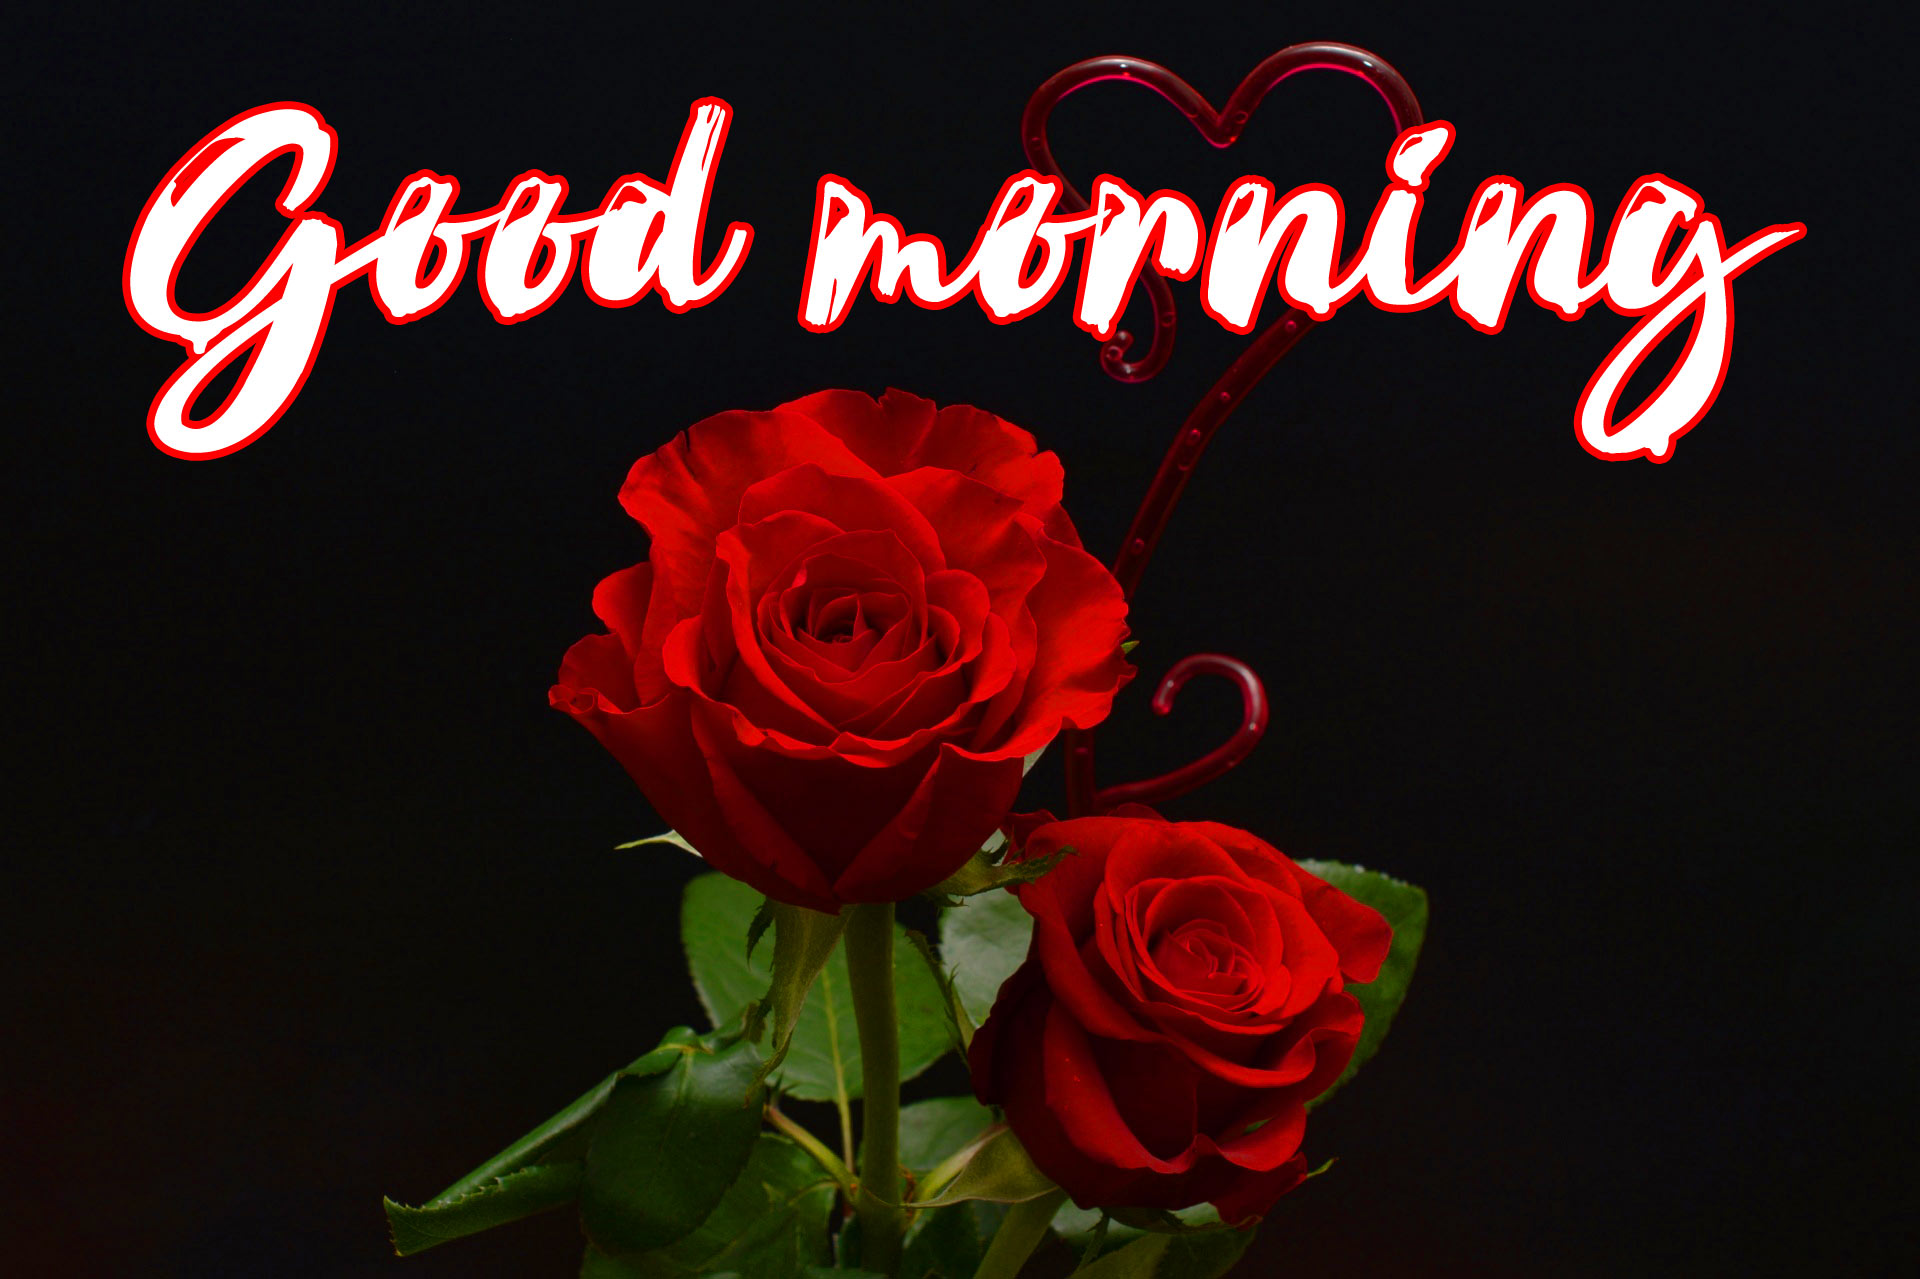 Good Morning Images For Girlfriend Wallpaper With Red Rose